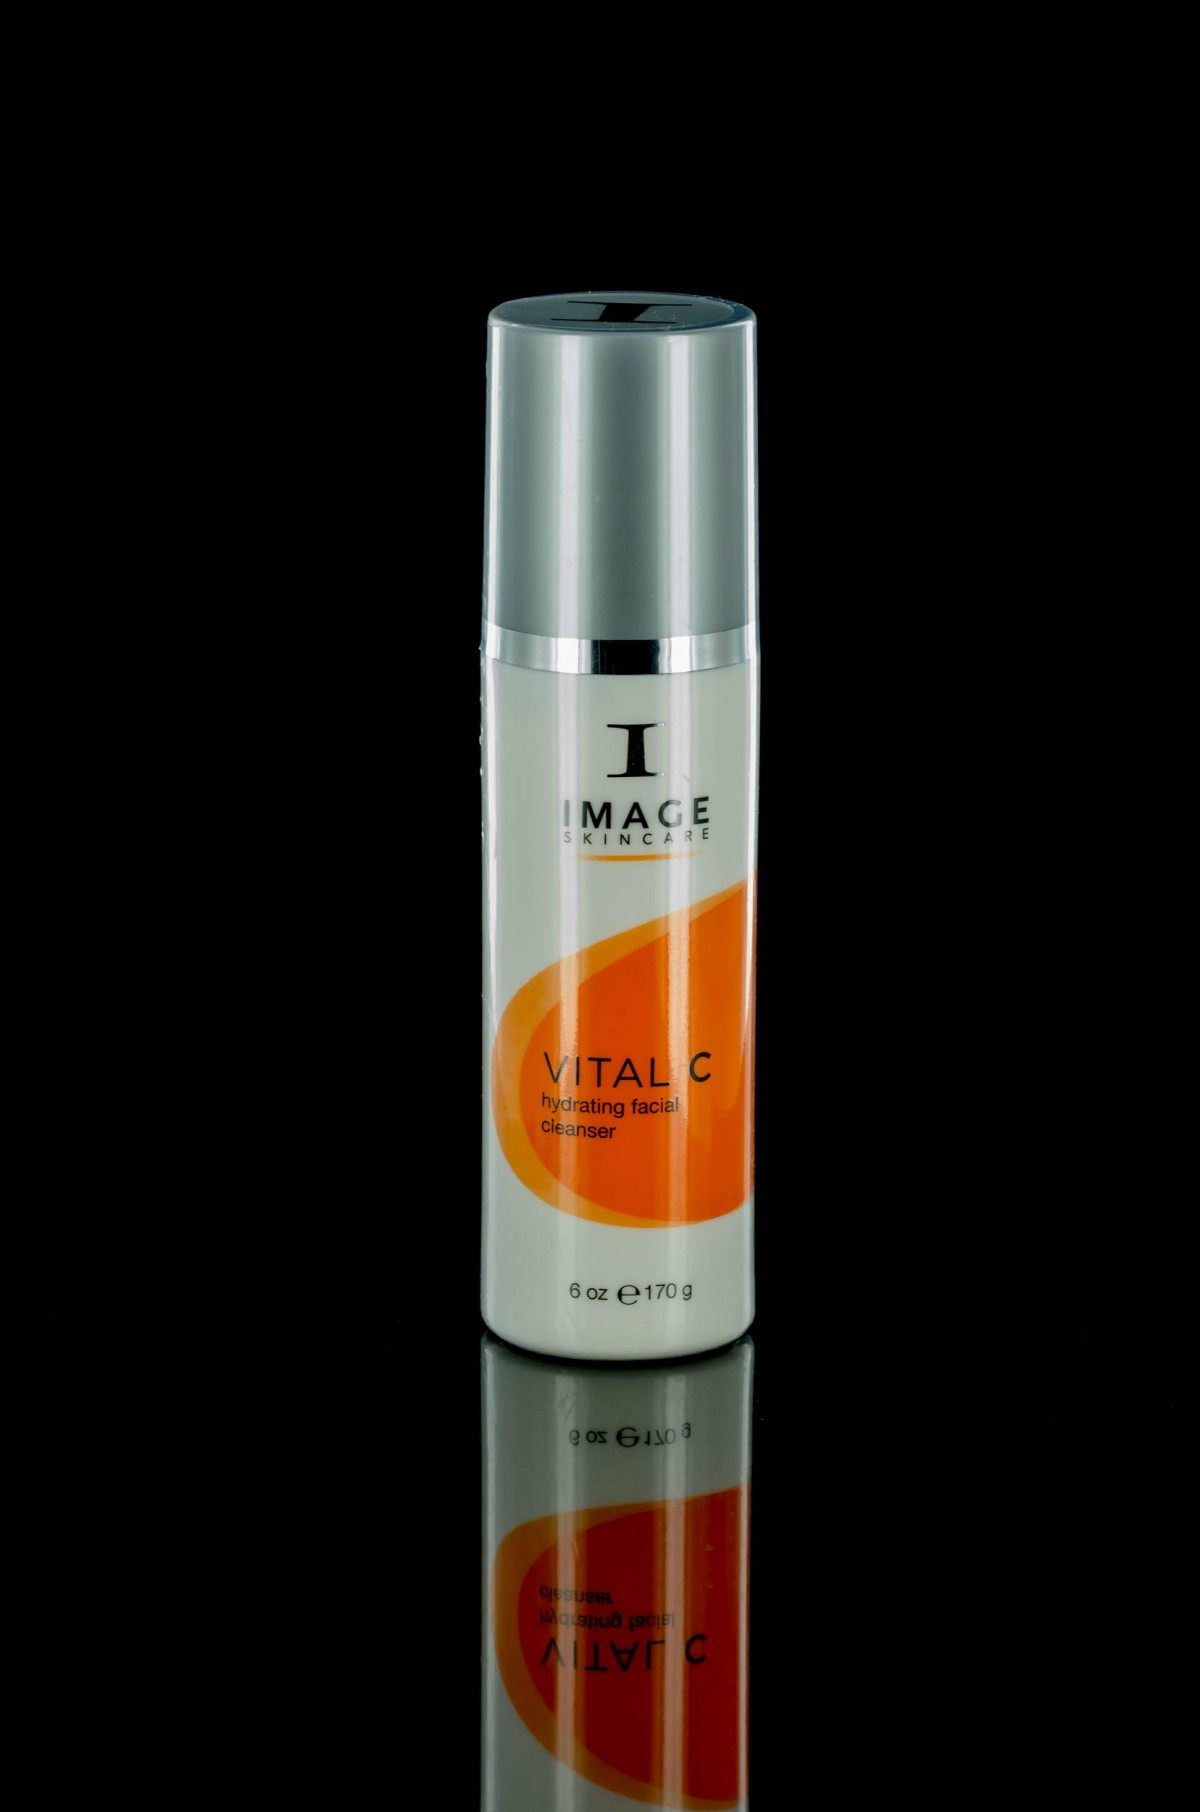 Vital C Hydrating Facial Cleanser 78